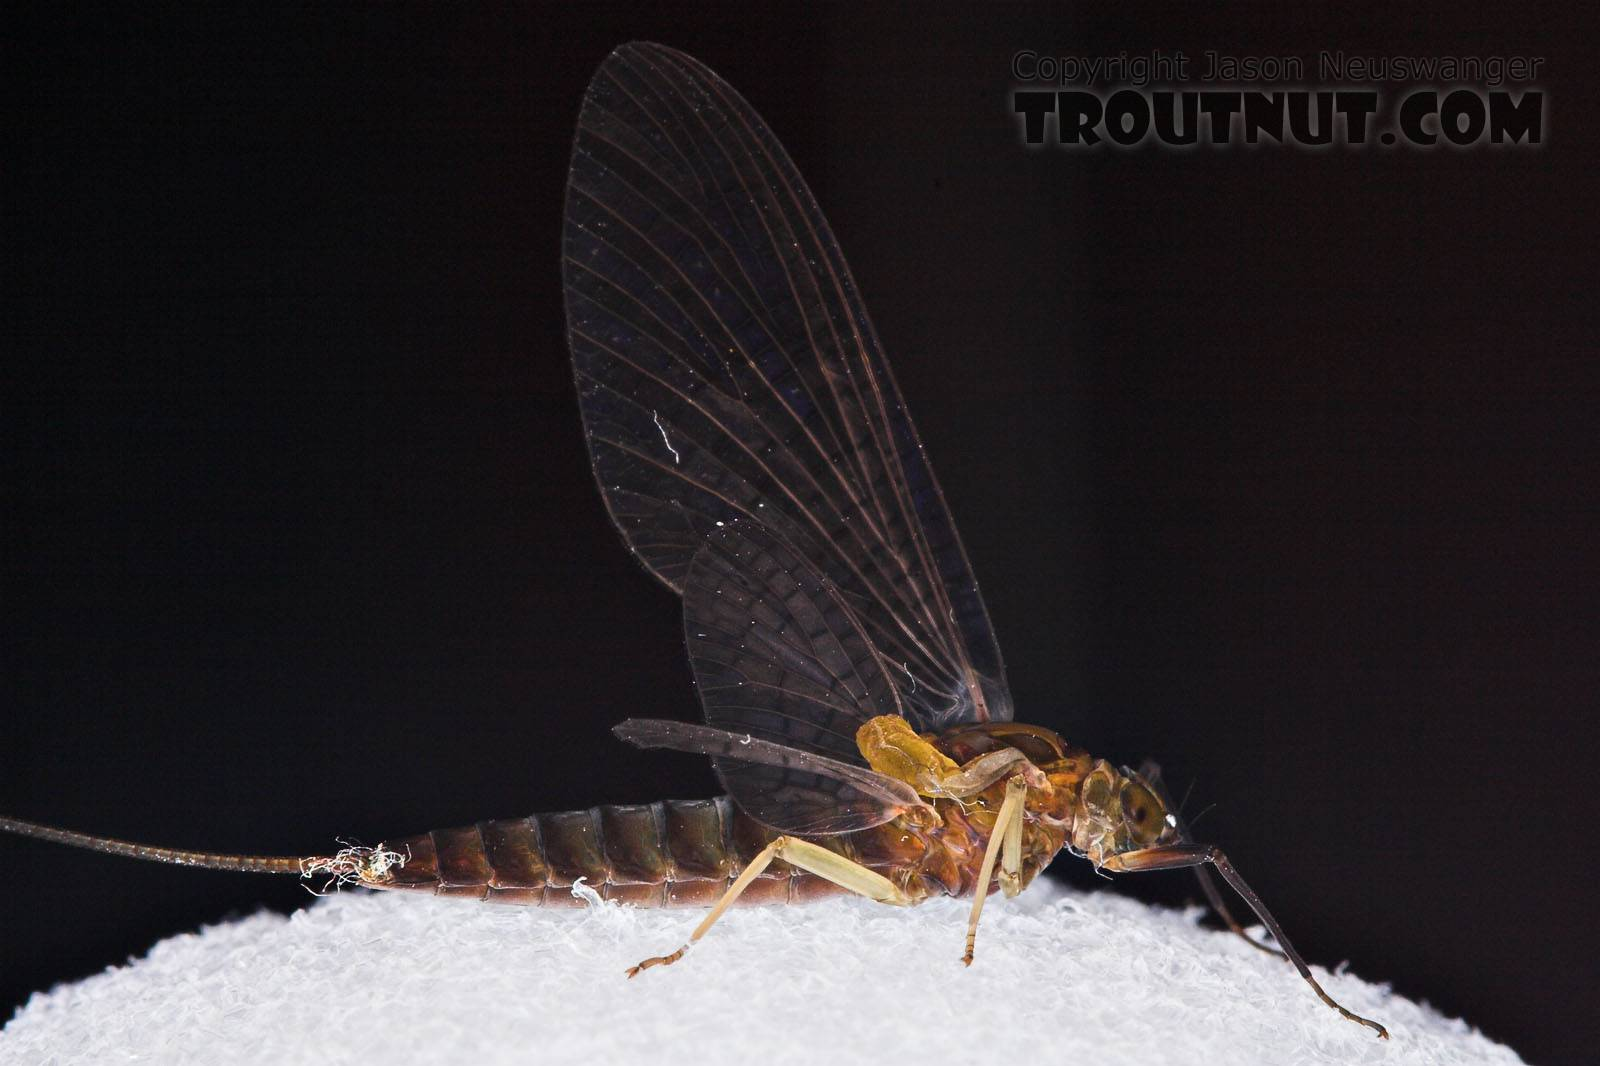 Female Isonychia bicolor (Mahogany Dun) Mayfly Dun from the West Branch of Owego Creek in New York